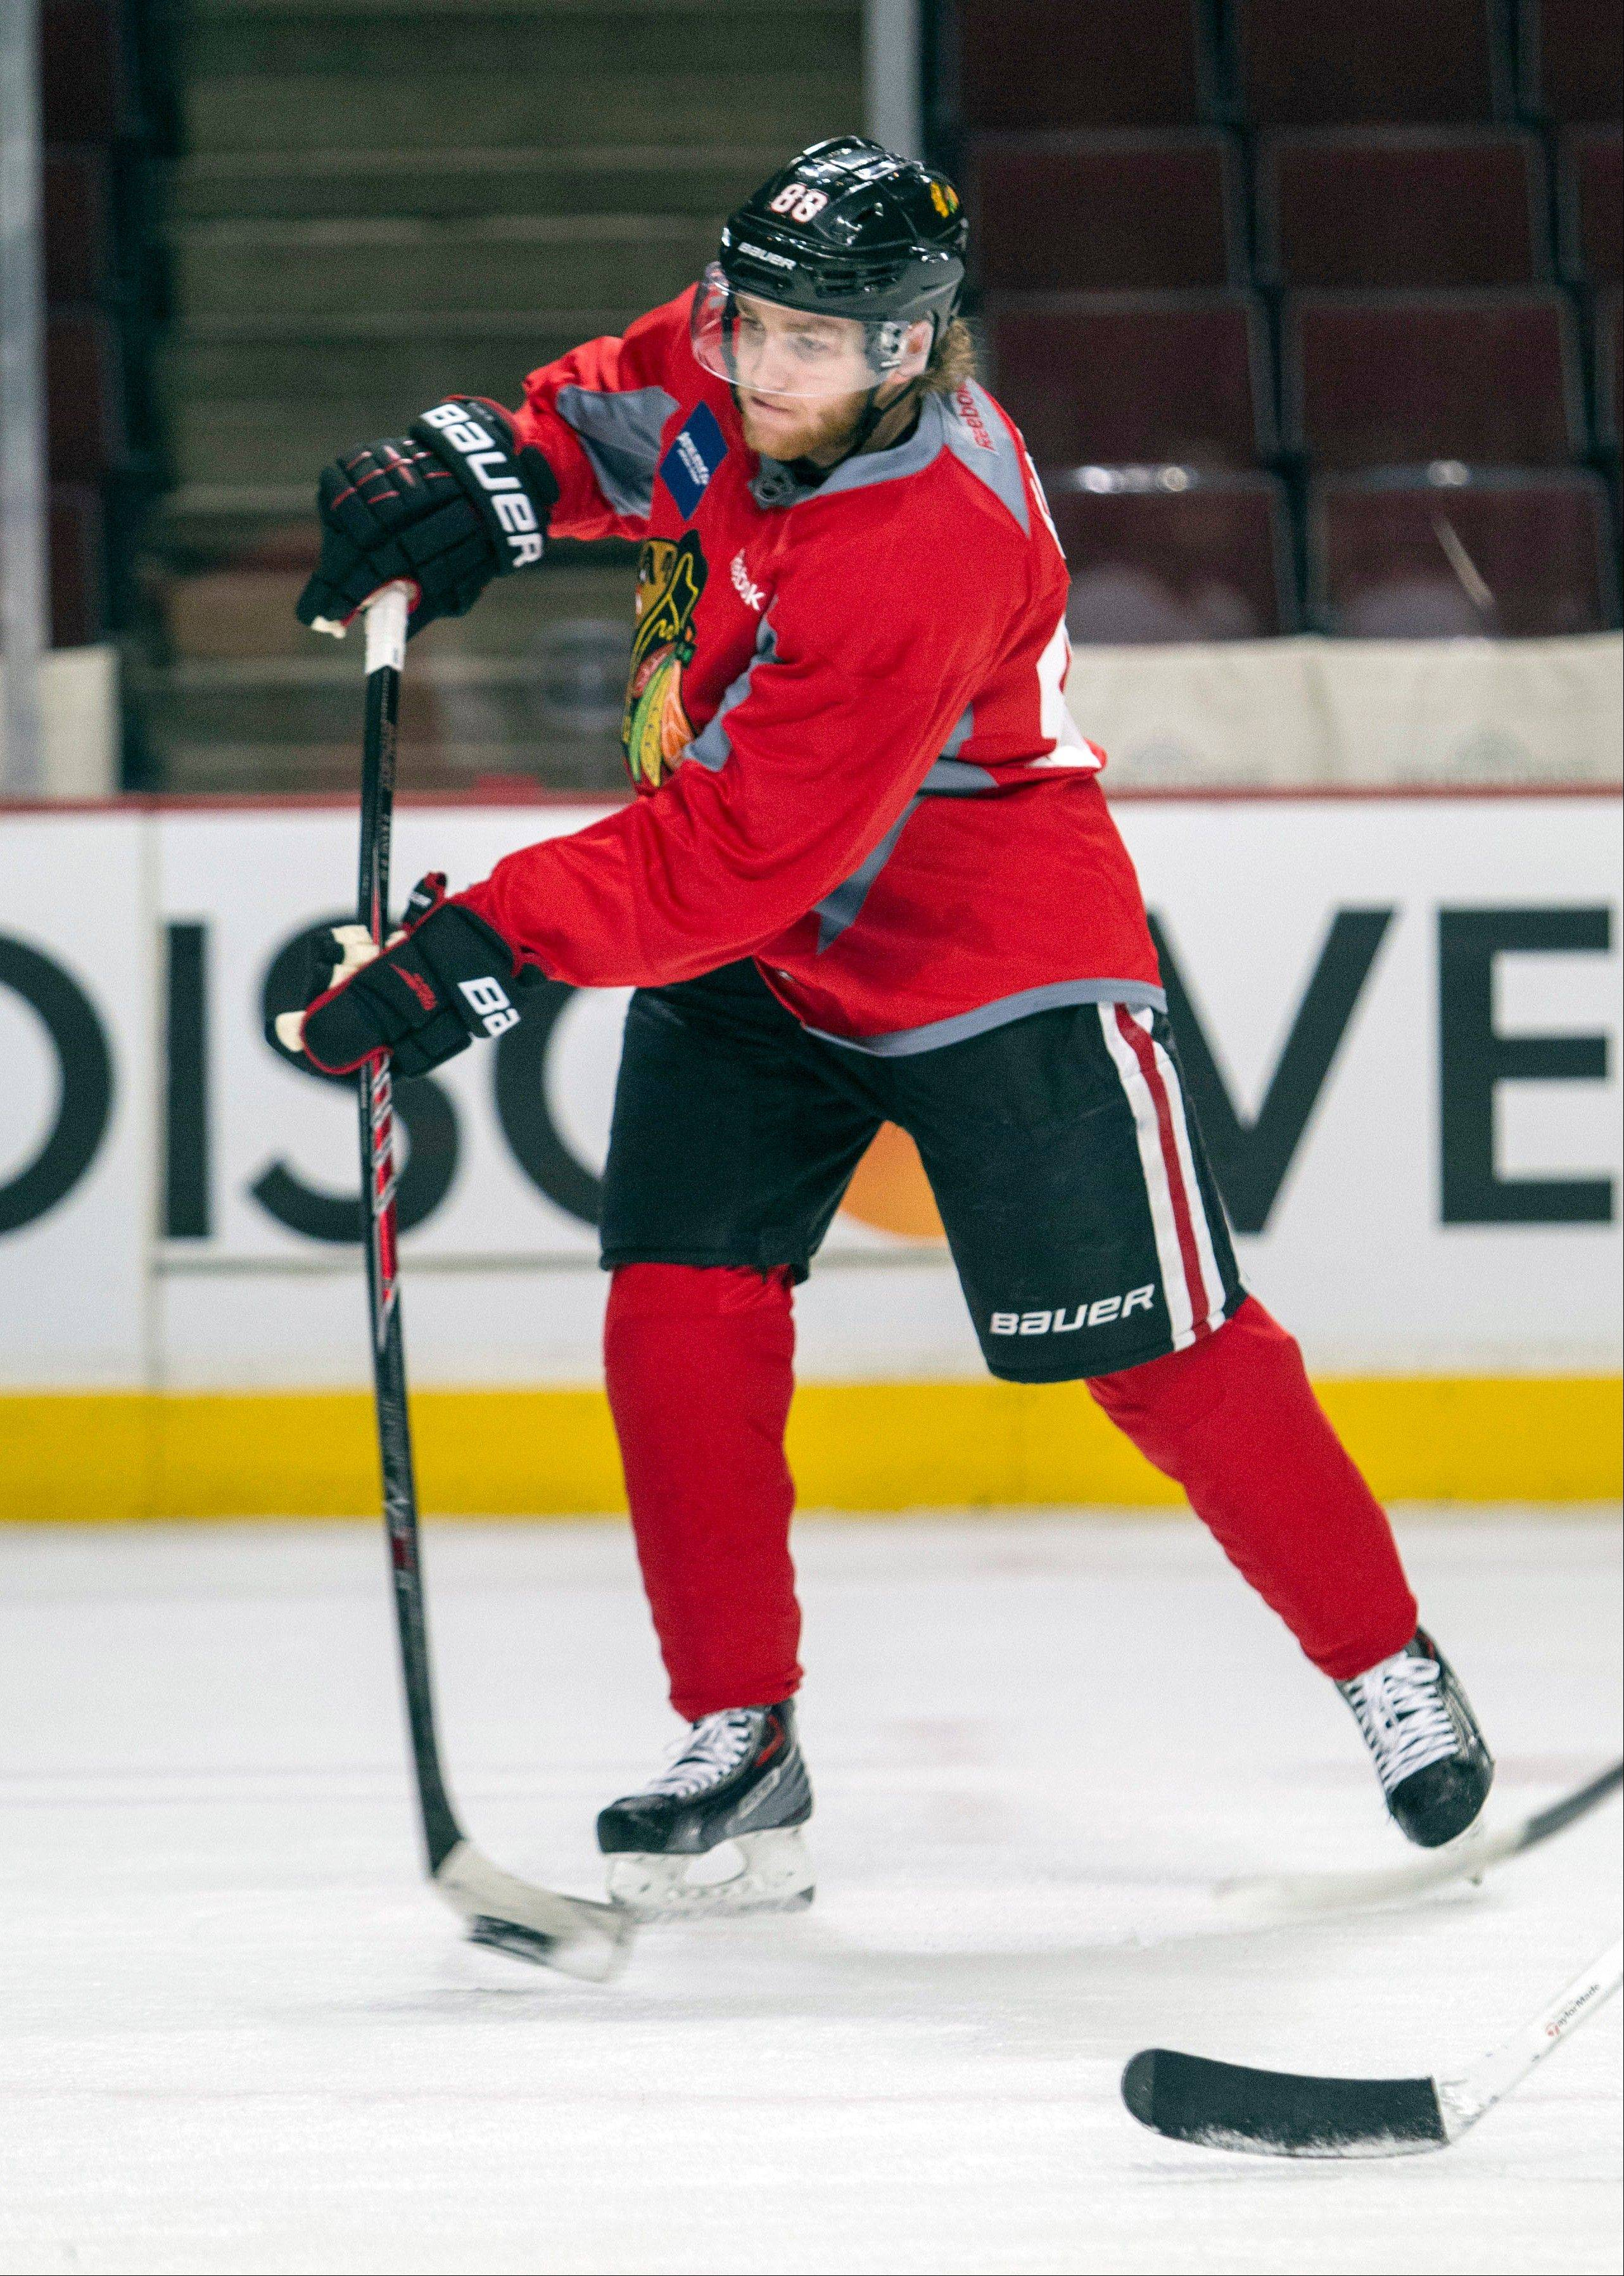 Blackhawks' Keith sees a more mature Kane